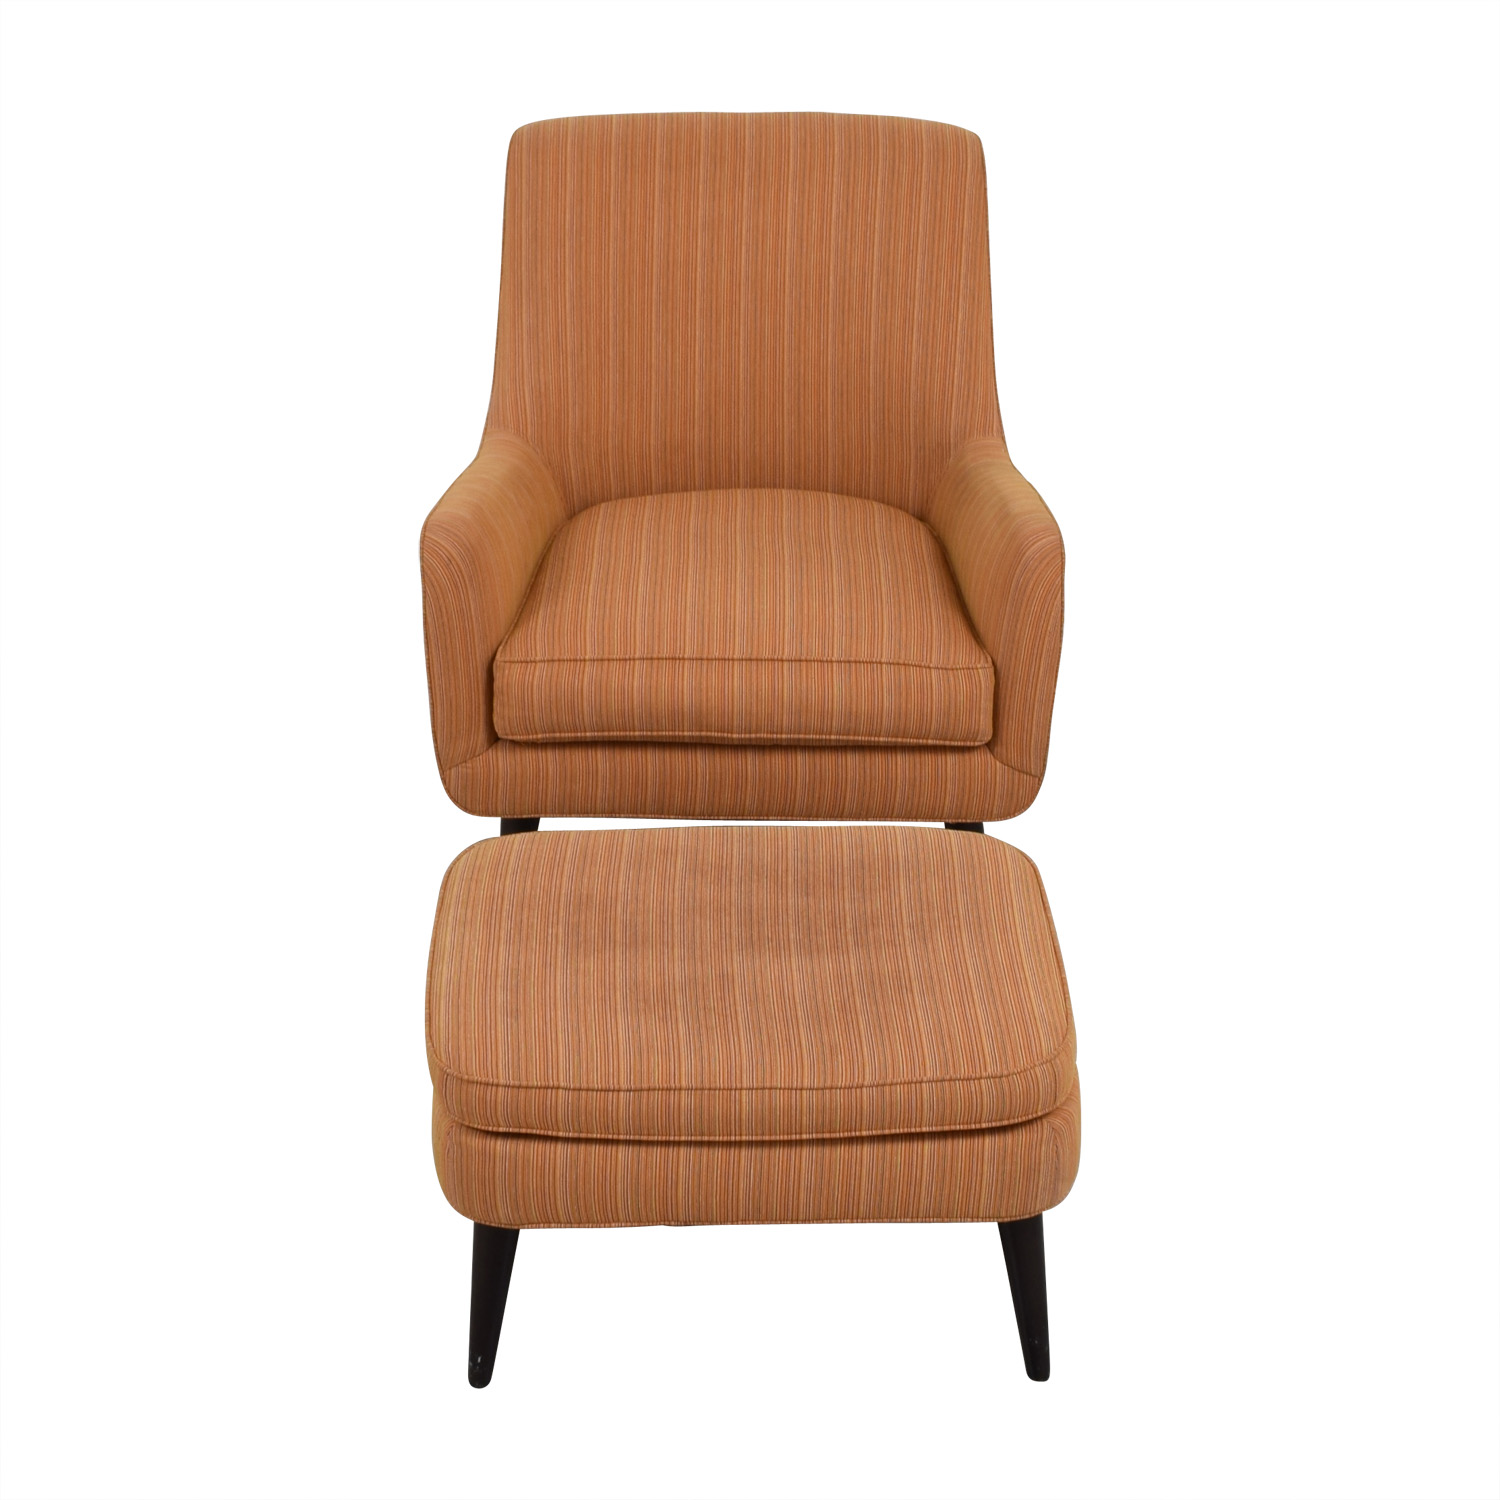 Room & Board Room & Board Orange Striped Lounge Chair & Ottoman for sale